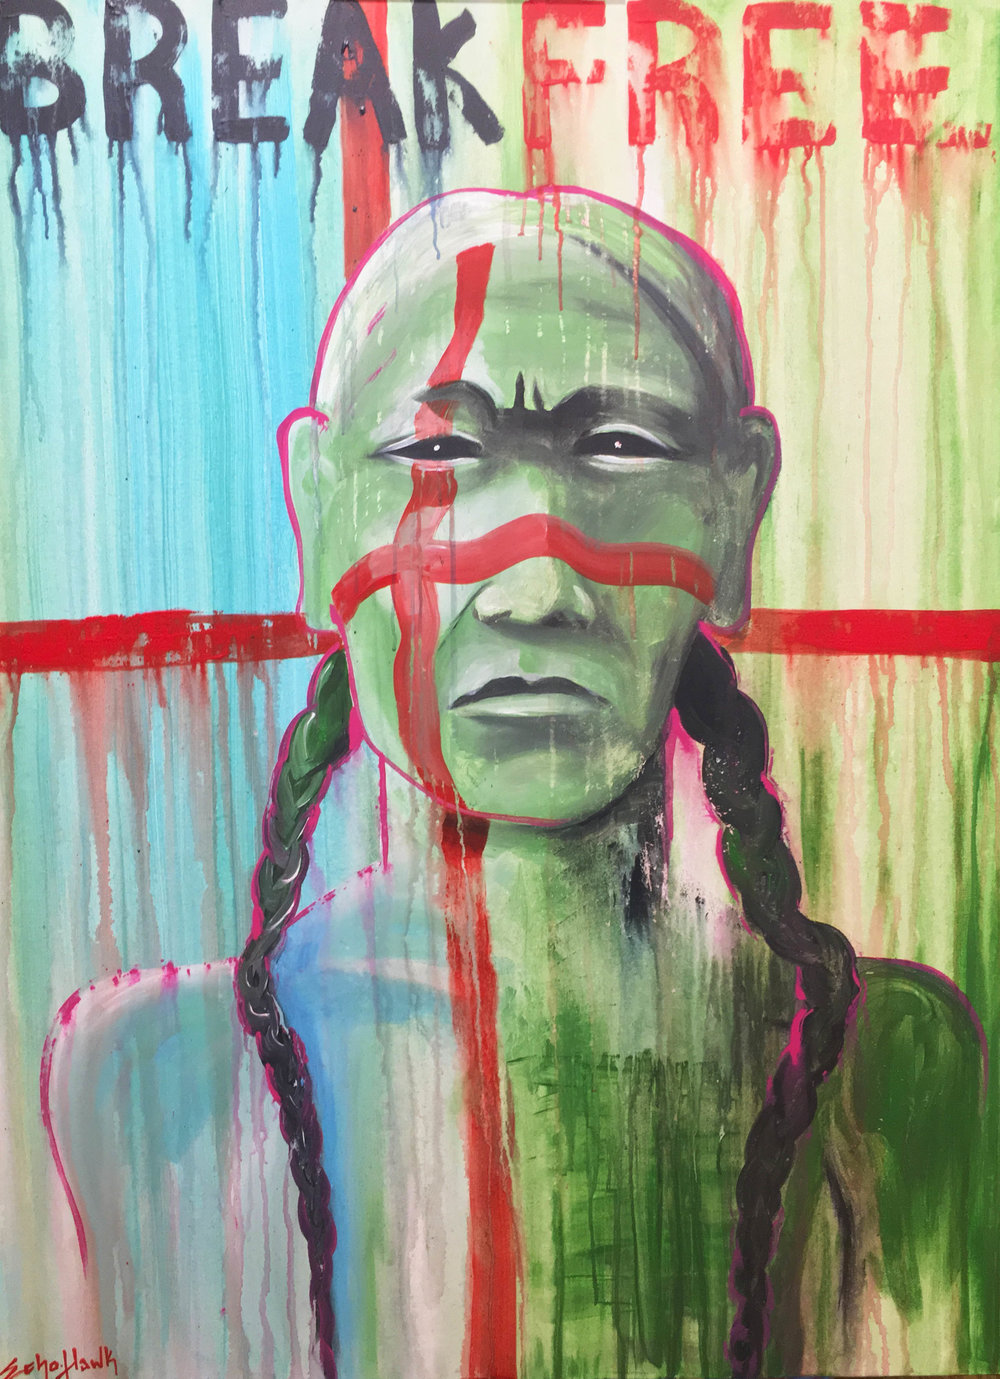 Break Free | acrylic on canvas | Bunky Echo-Hawk | created LIVE in 2018 at the Museum of Native American History Museum Cultural Symposium